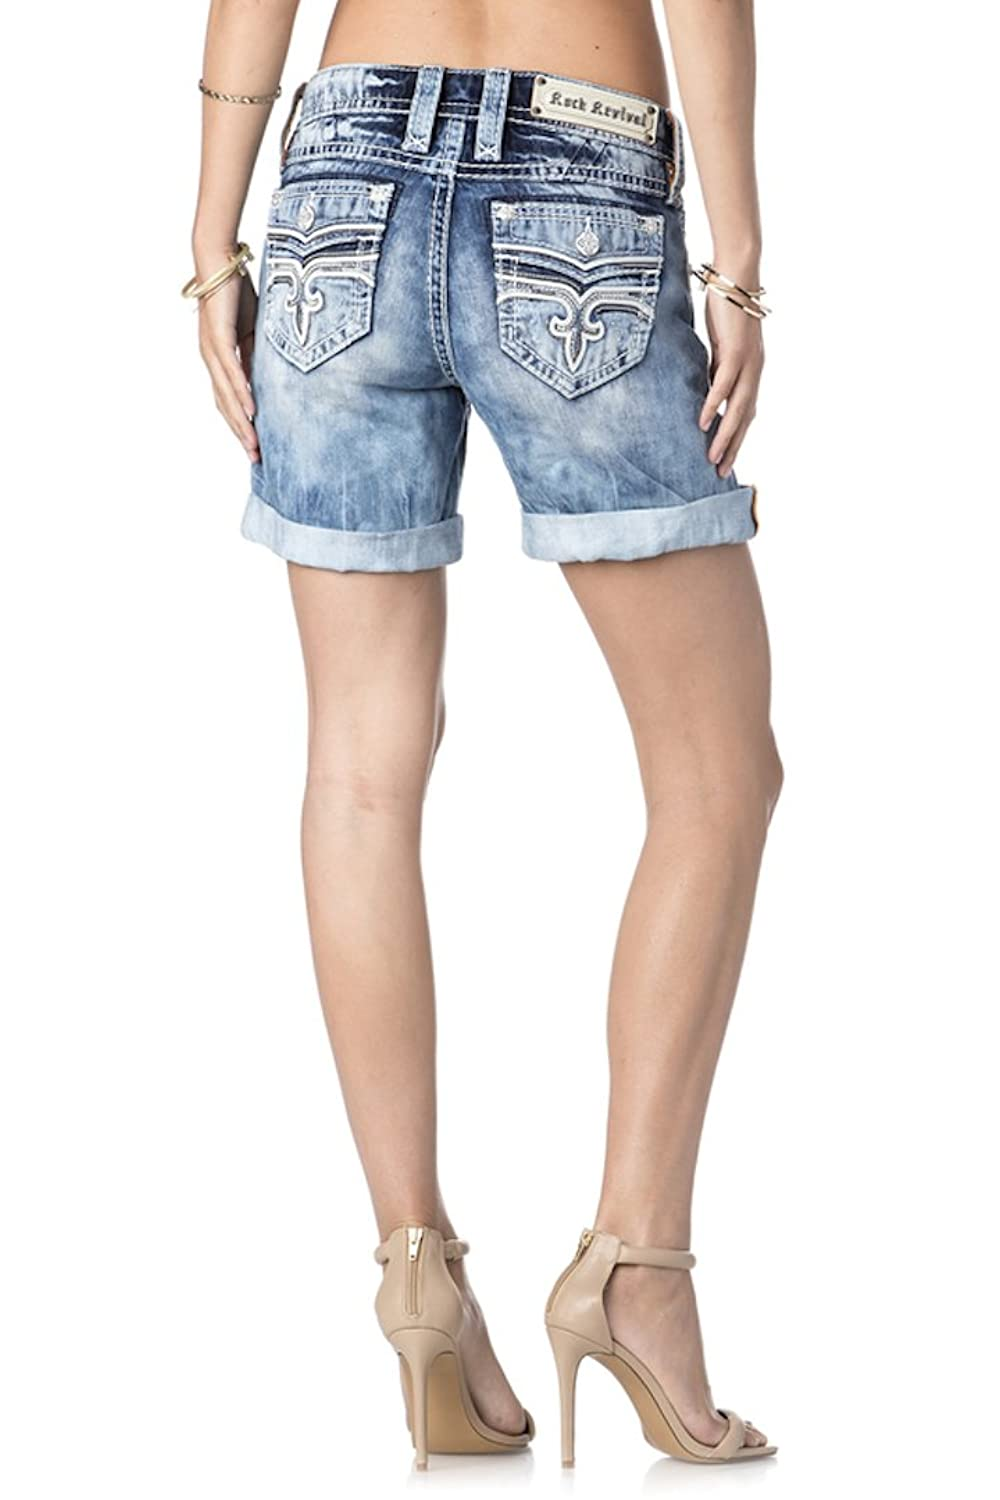 Rock Revival Jeans Women's Sybella RH500 Easy Fit Shorts Medium Wash Mid Thigh